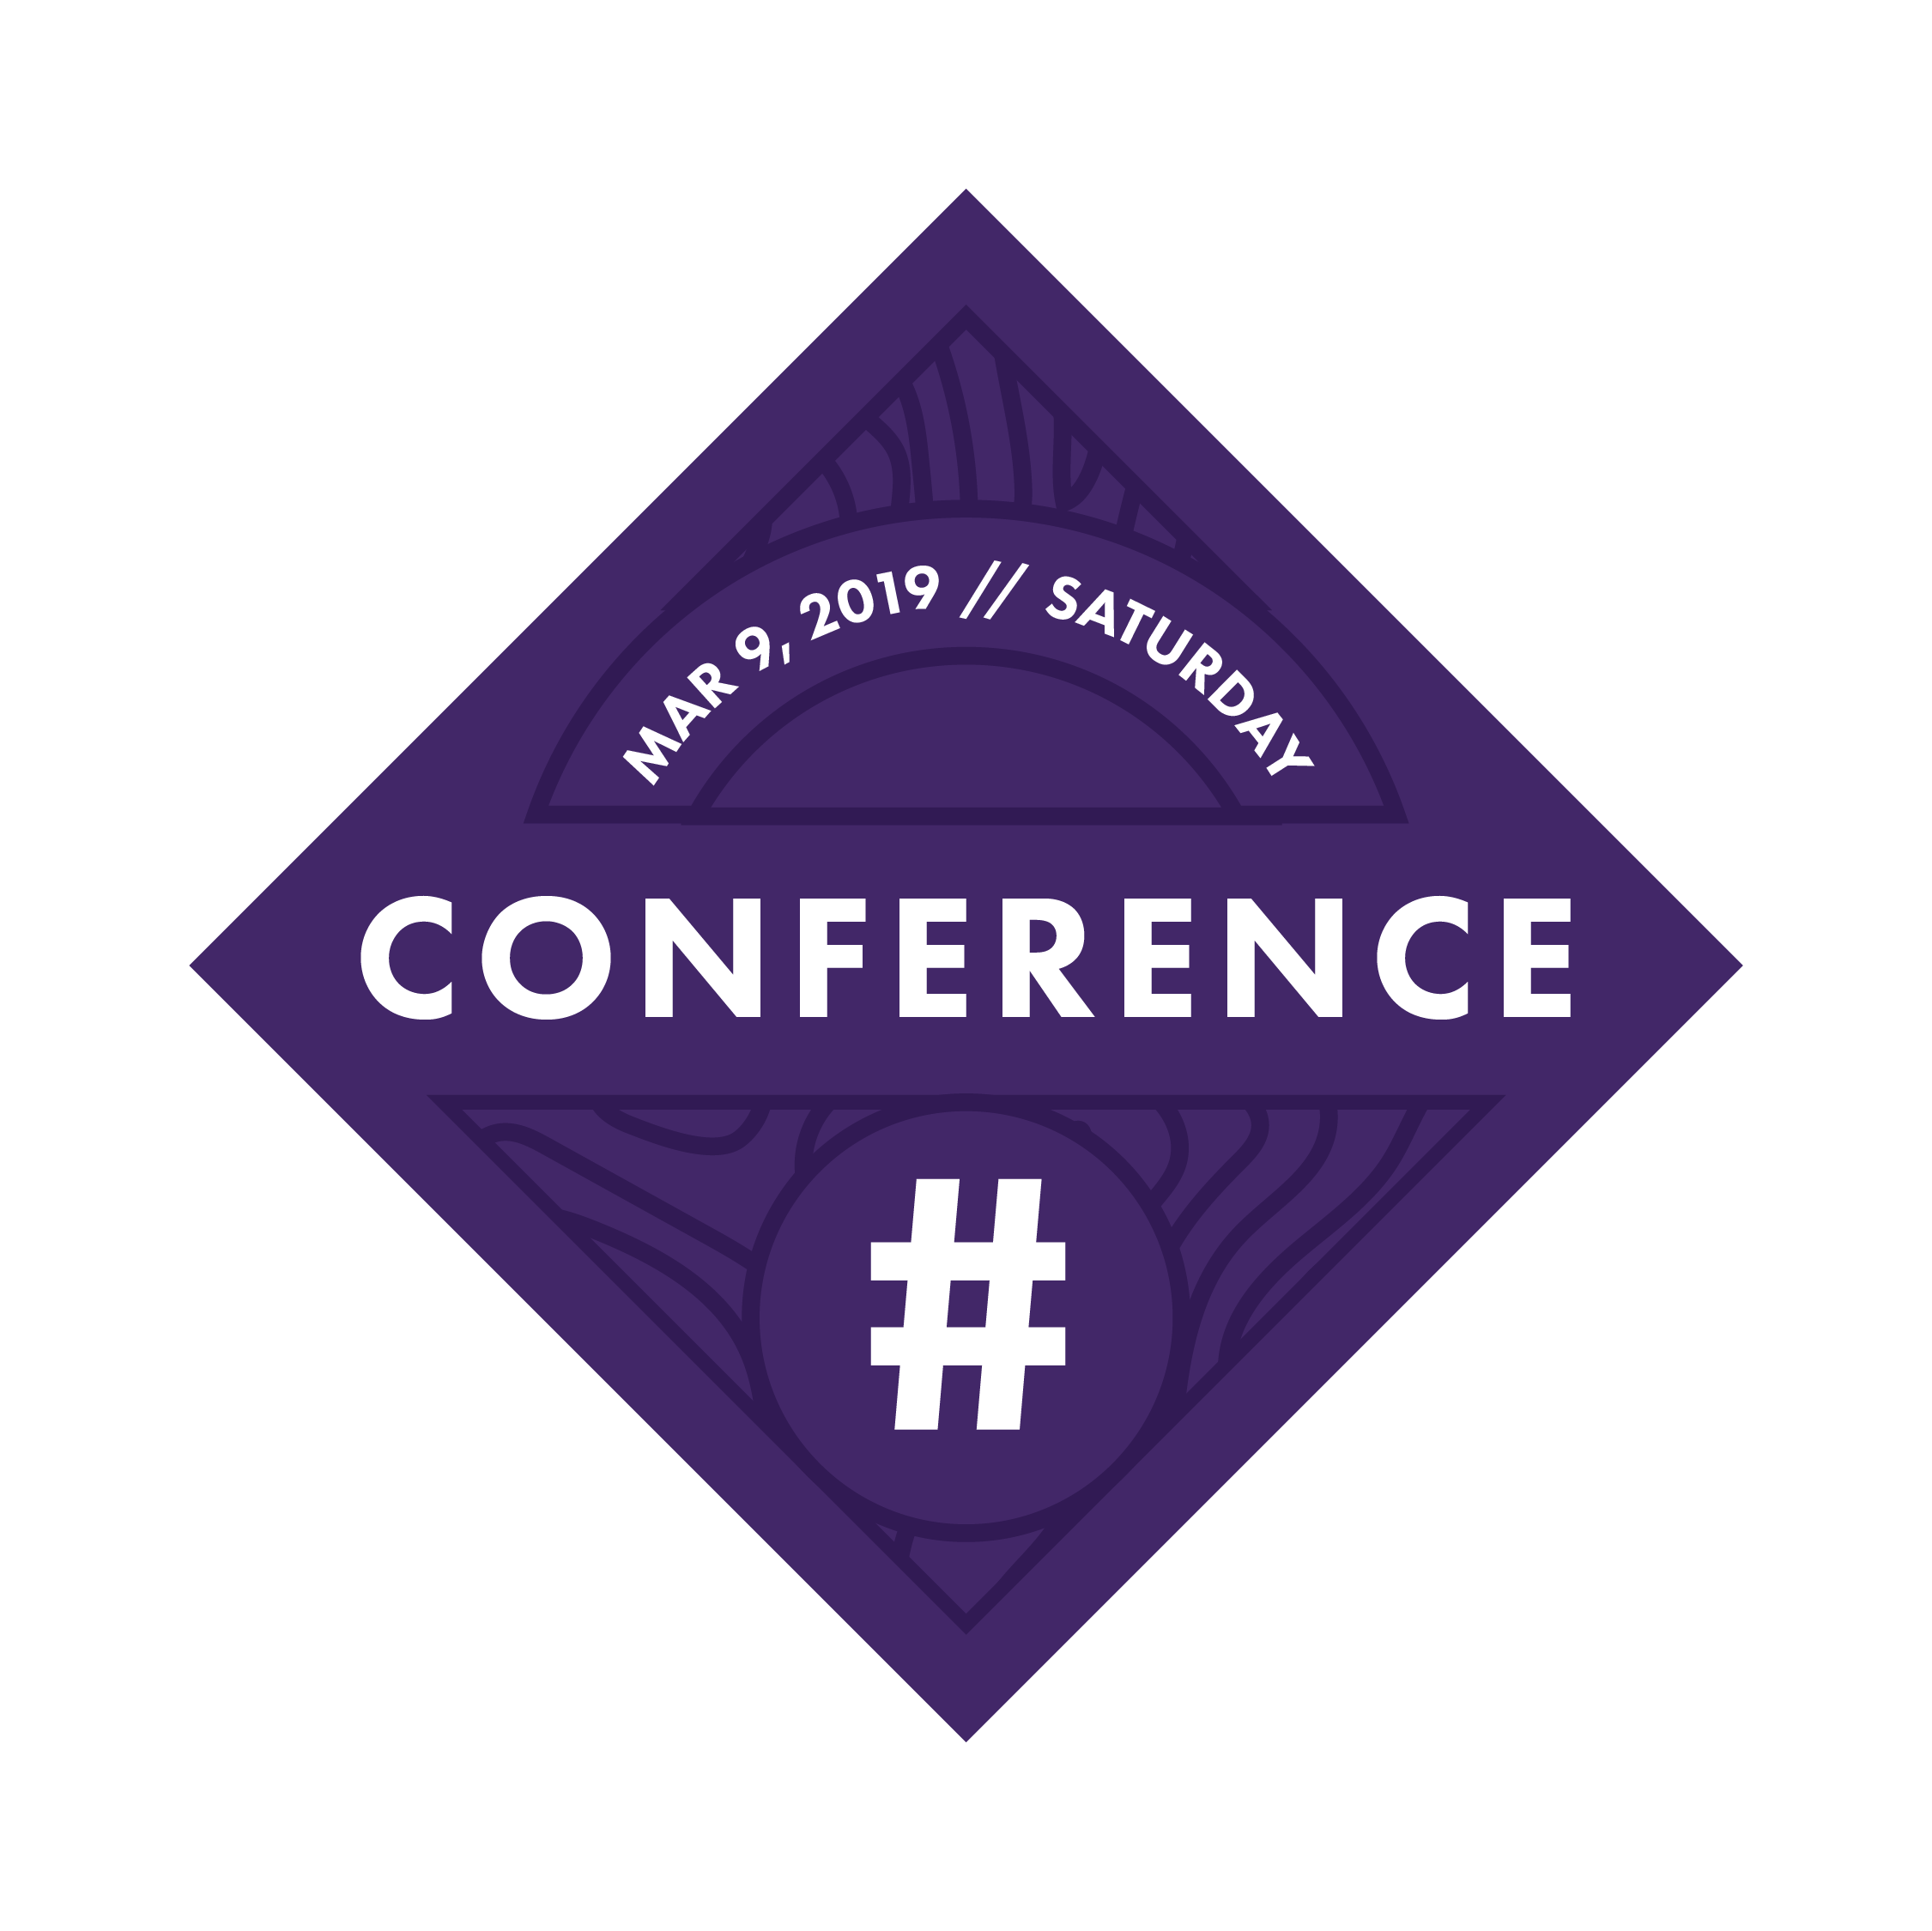 Conference Pass - Saturday conference // keynote address // 20+ breakout sessions from 25+ digital marketing professionals // breakfast, lunch, snacks & an endless supply of coffee